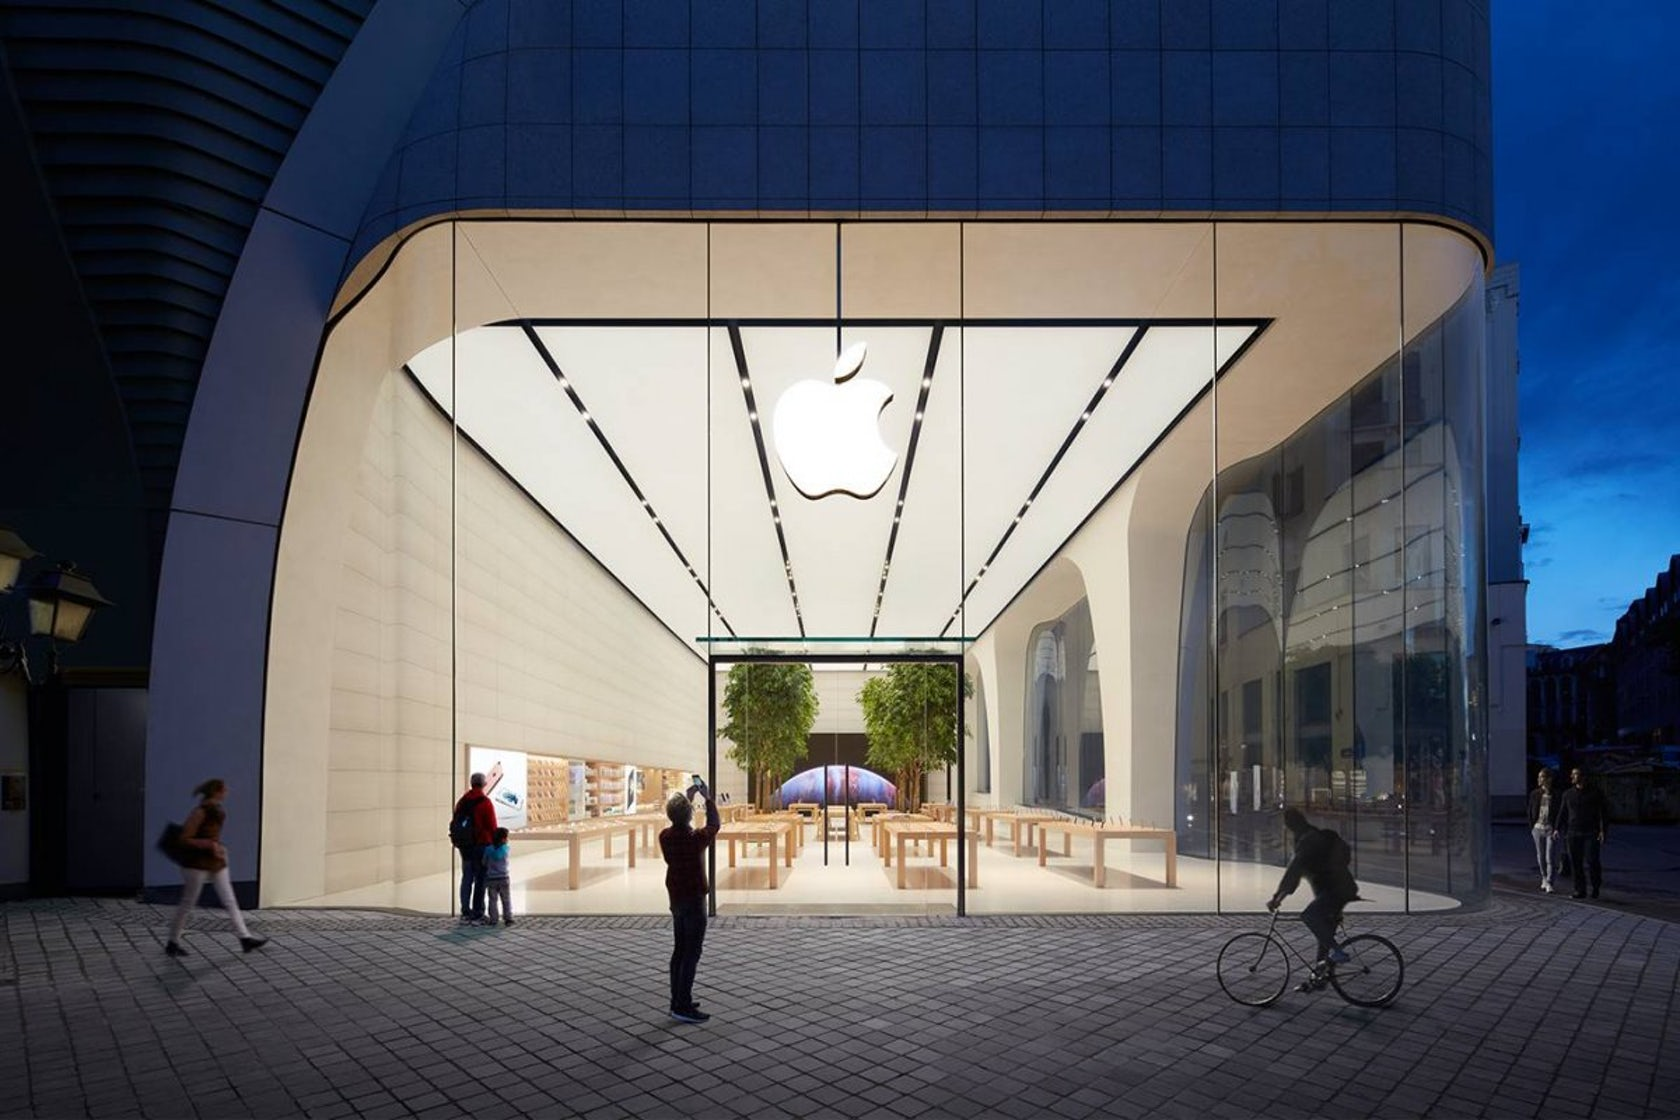 1463802848144this-is-the-new-apple-store-in-brussels-from-the-outside.jpg?q=60&auto=format,compress&cs=strip&w=1680